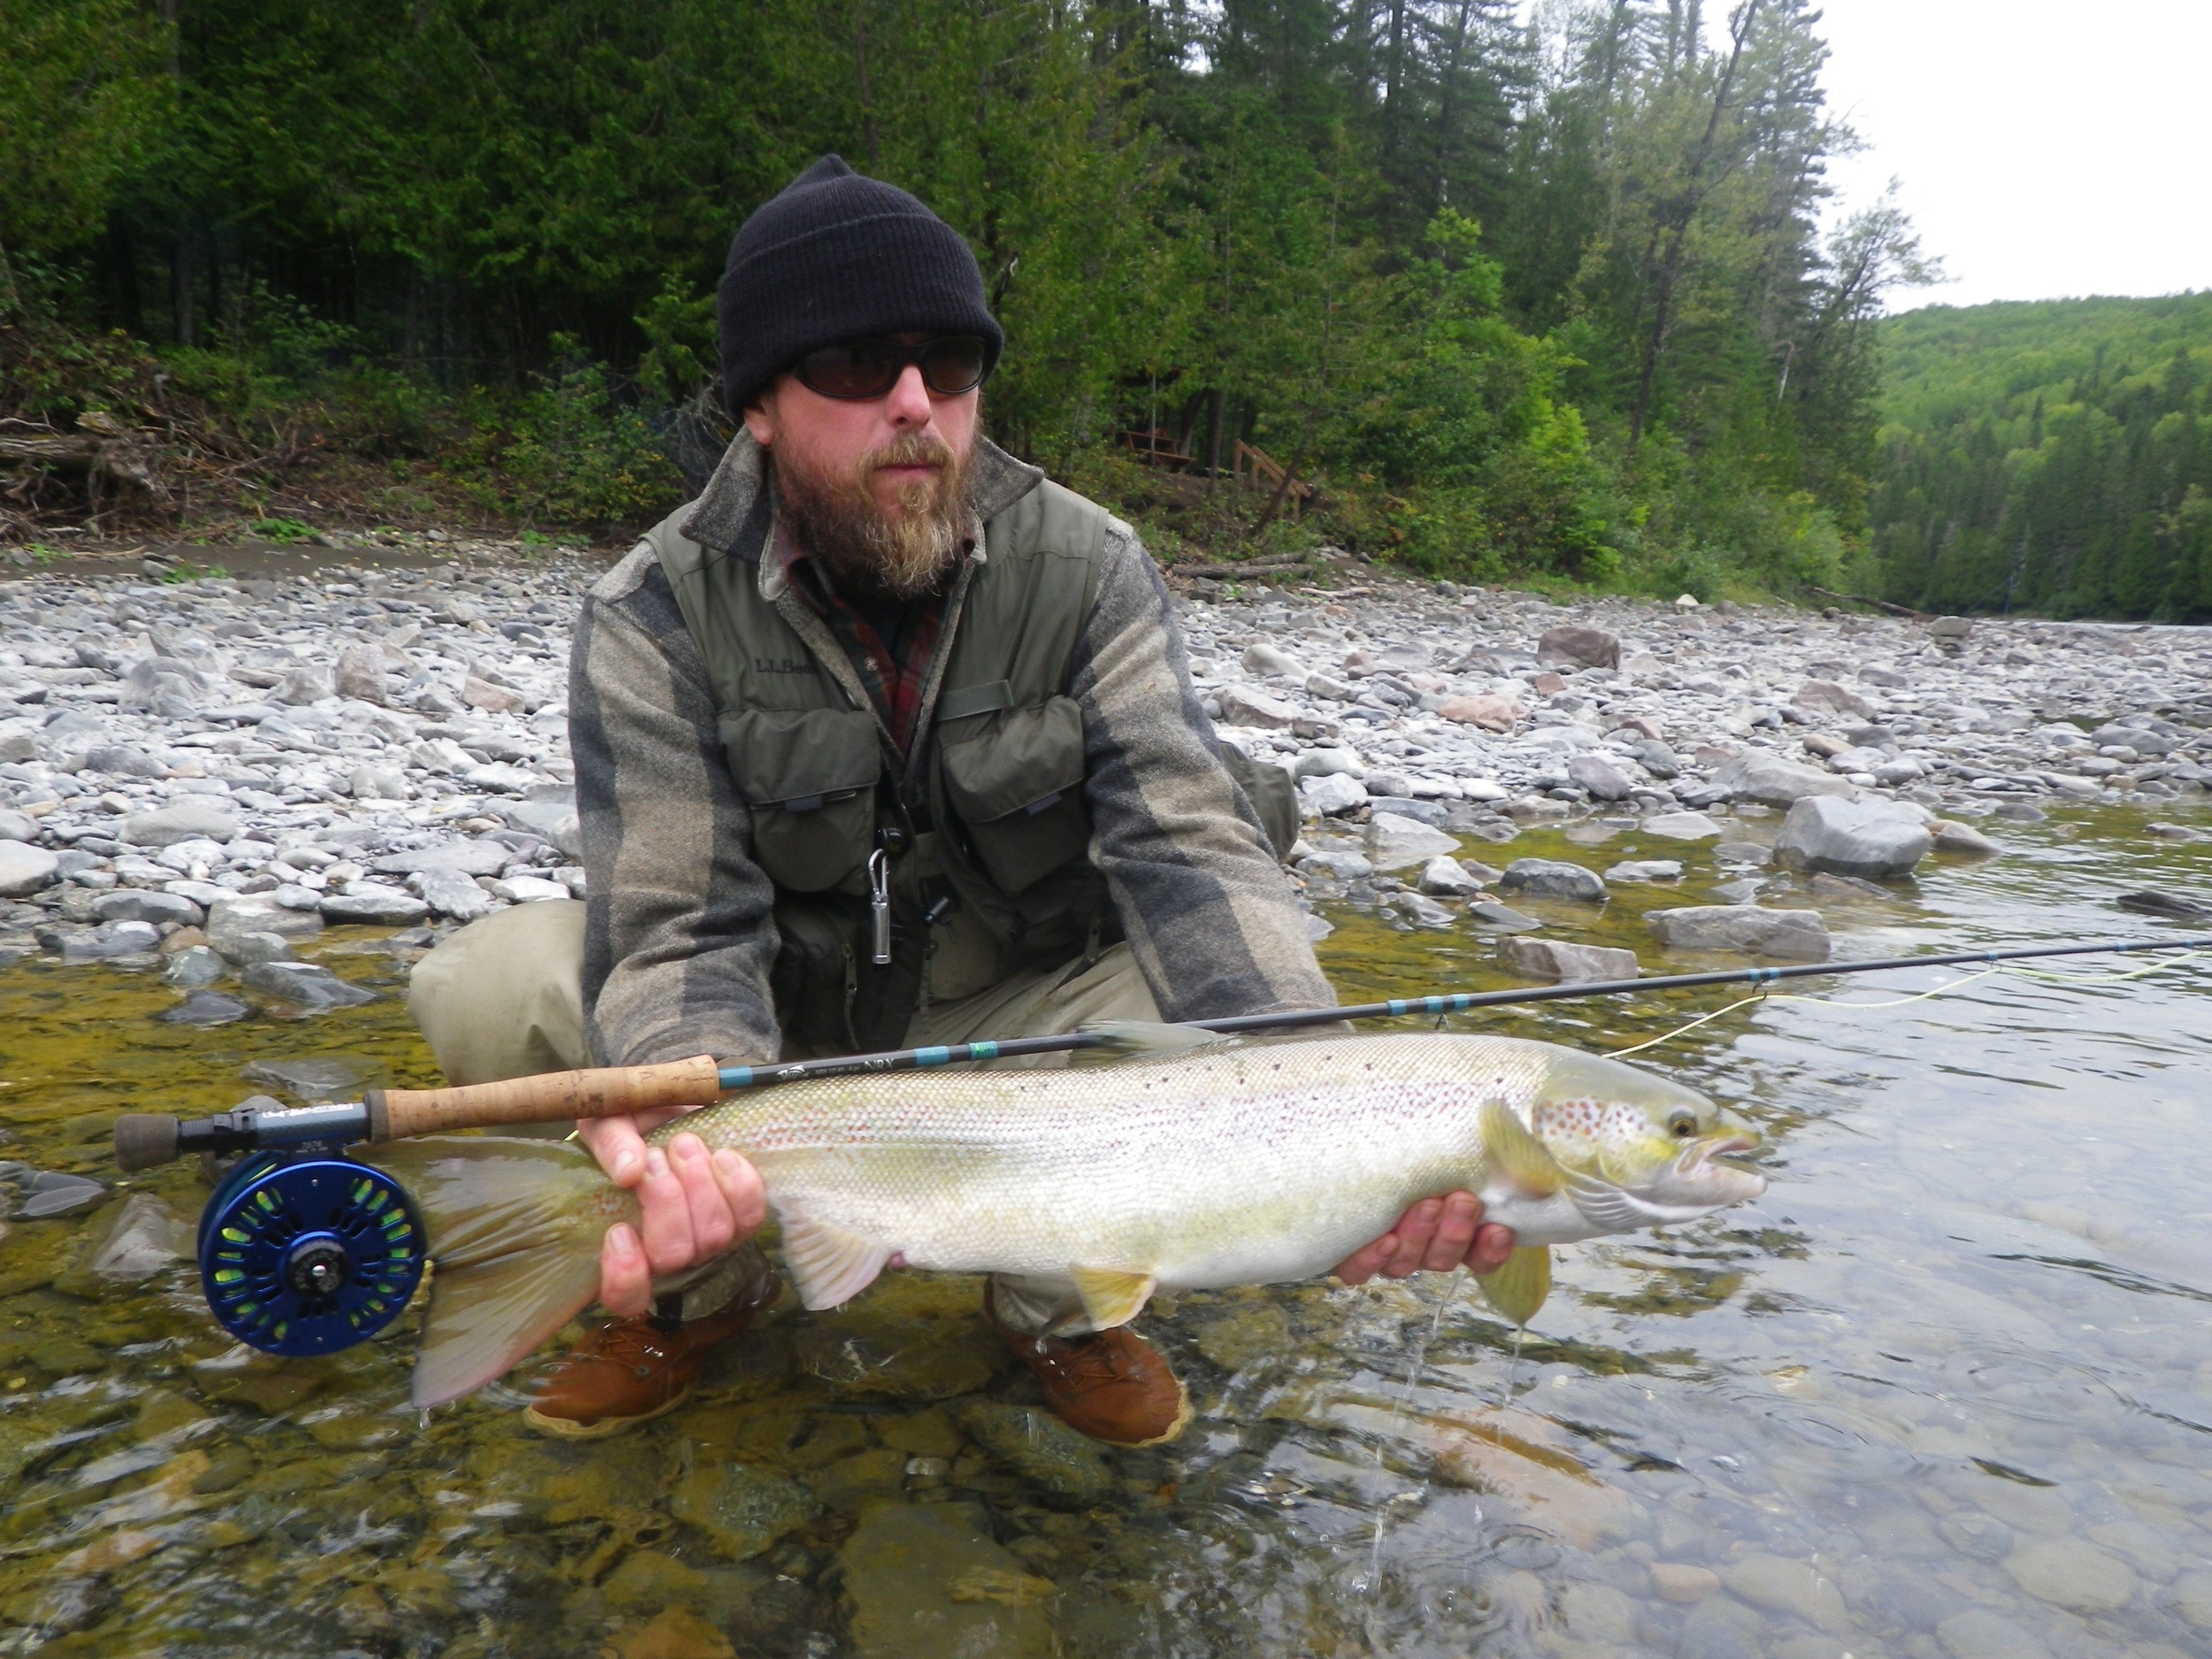 Mal Stevens from Maine with his first one of 2015, Nice fish Mal!